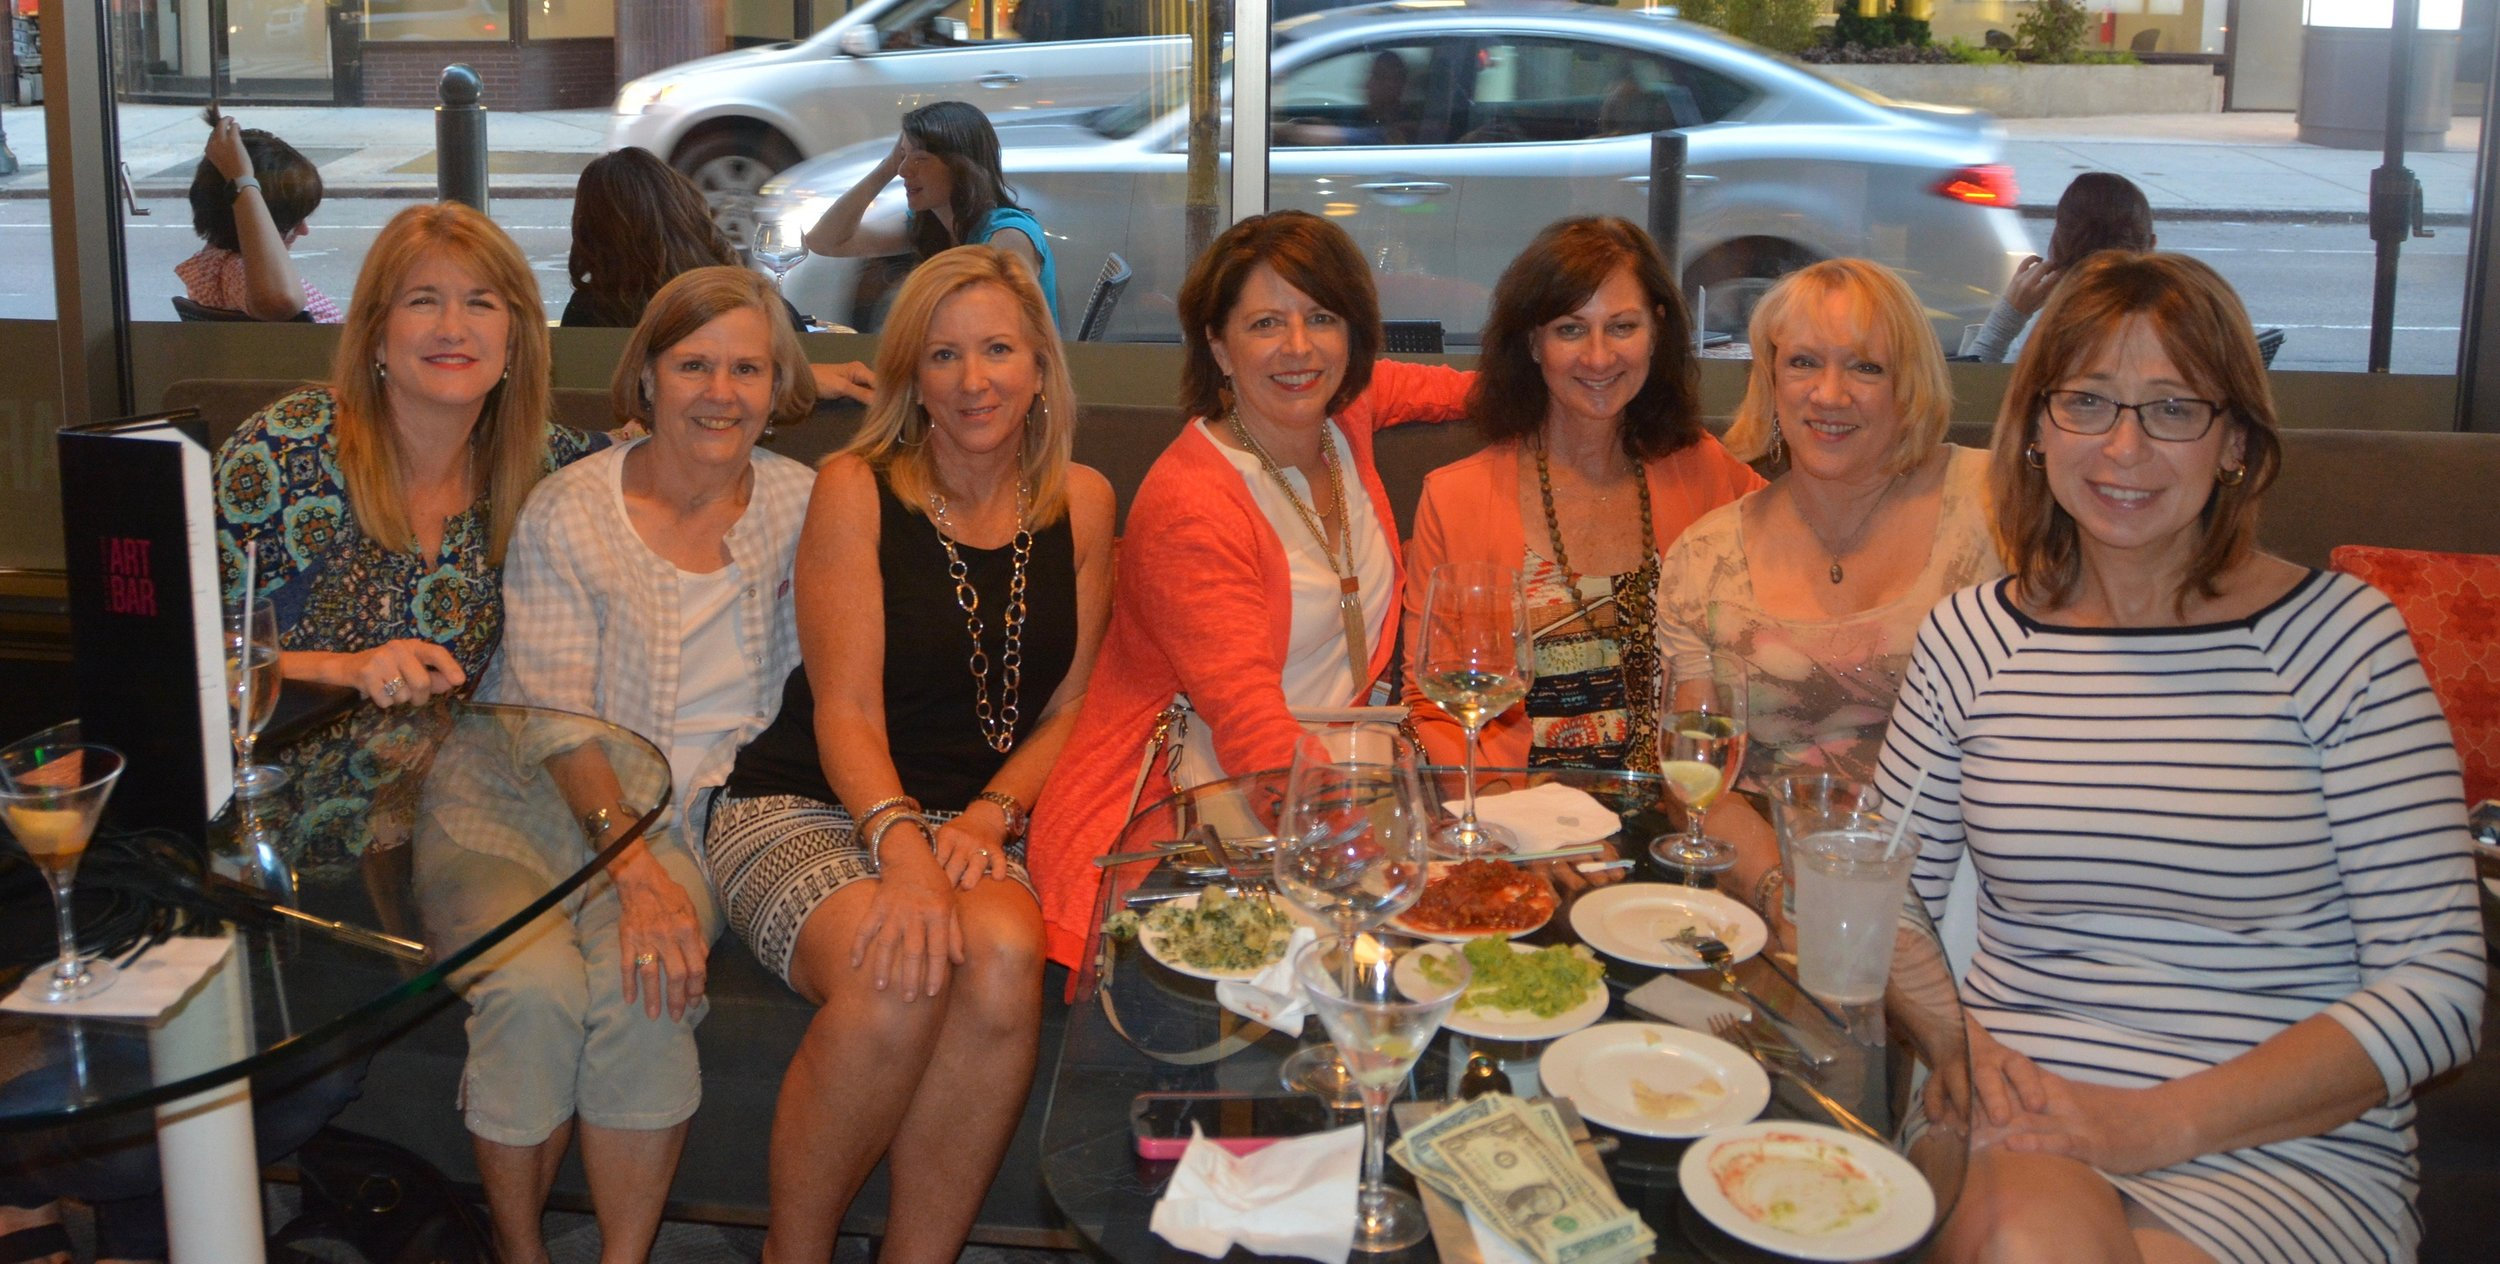 Appraisers out on the town